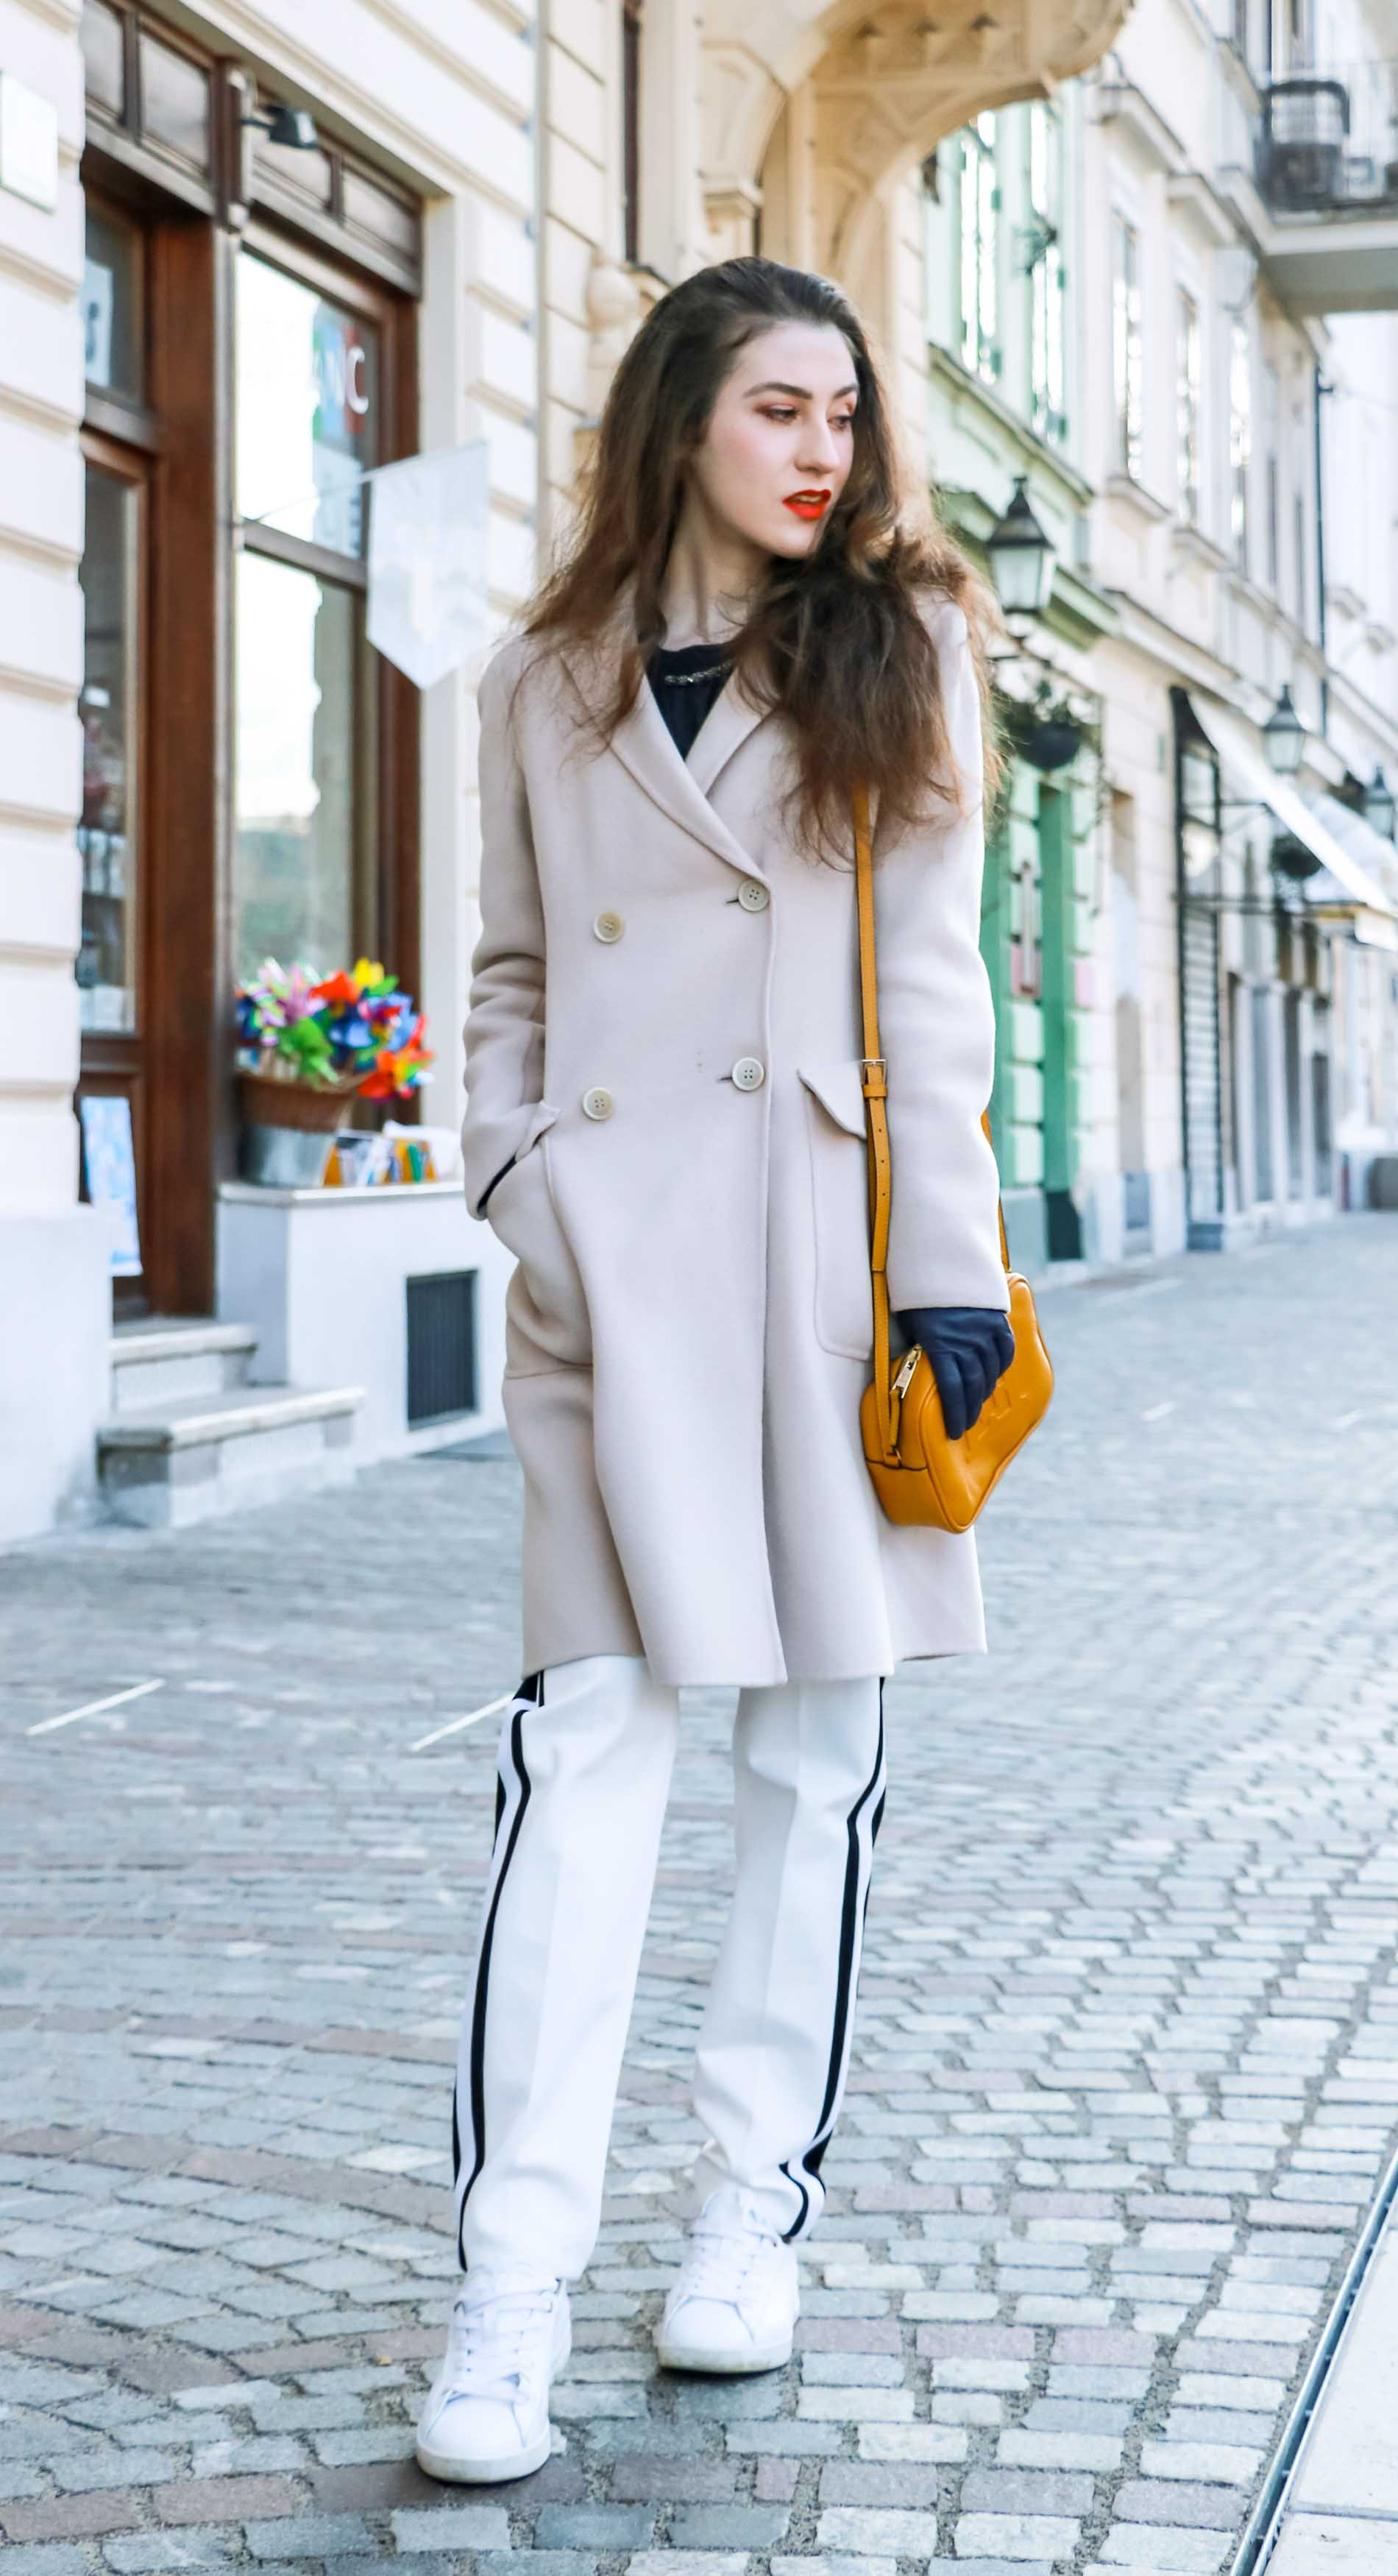 Fashion Blogger Veronika Lipar of Brunette from Wall Street wearing white track pants with black side stripe from Escada, black silk blouse, off-white pastel double breasted coat from Weekend Max Mara, white leather sneakers from Diesel, yellow shoulder bag from Escada while walking down the street in Ljubljana